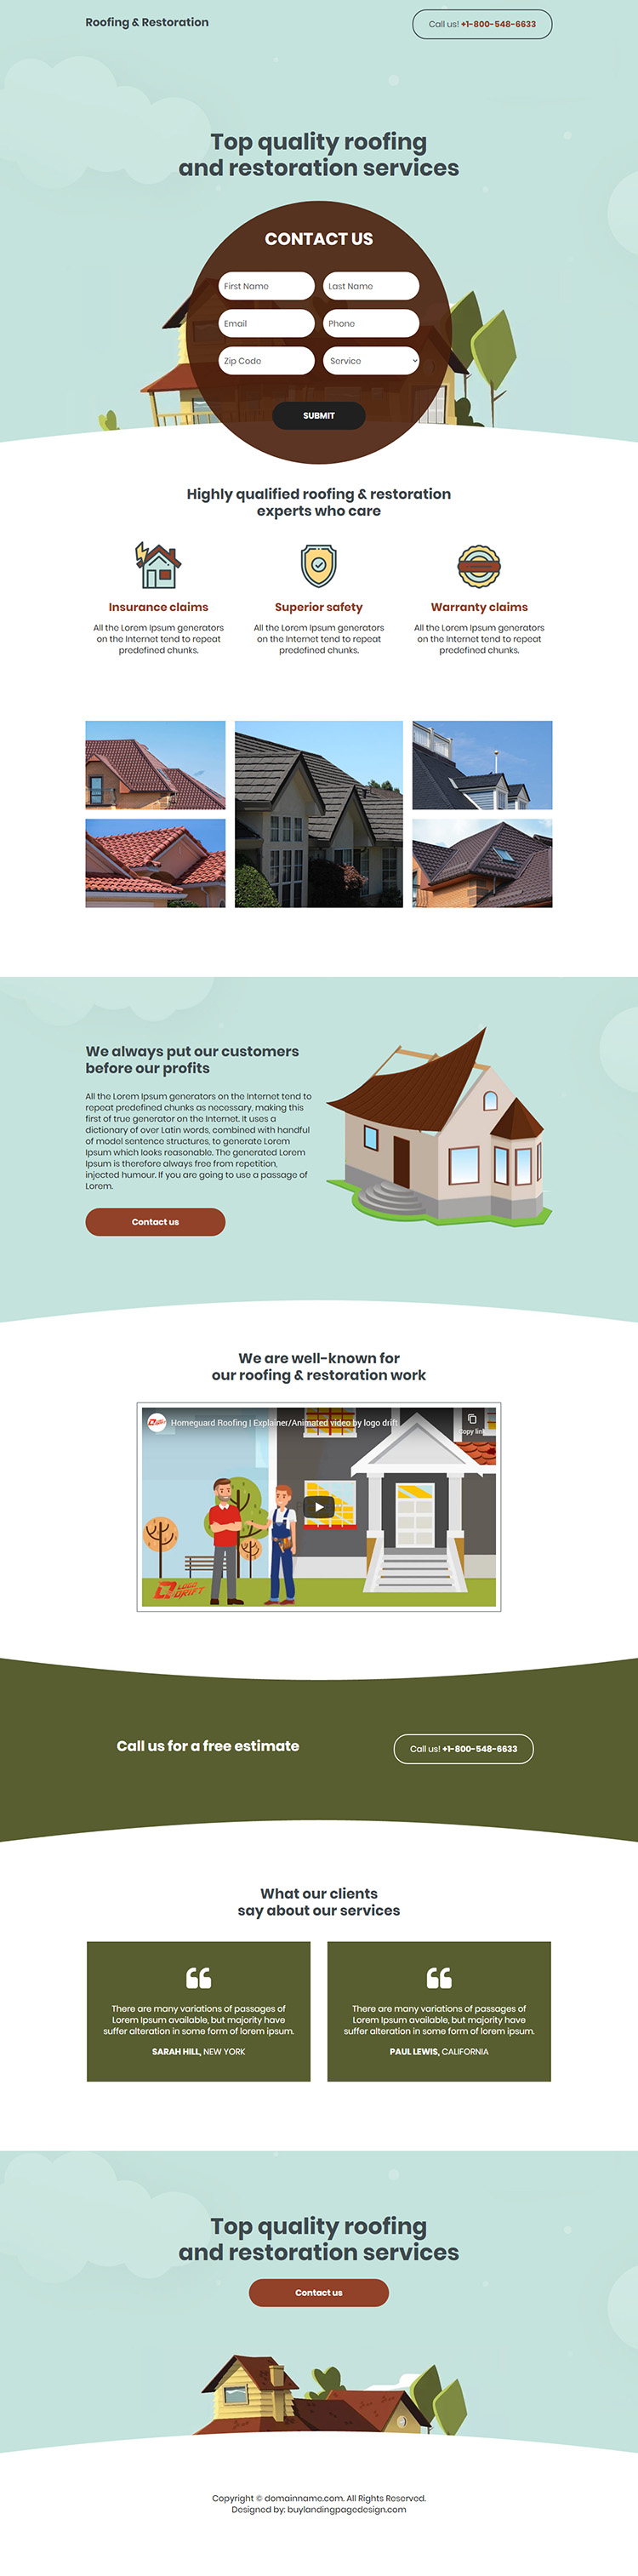 roofing and restoration service responsive landing page design